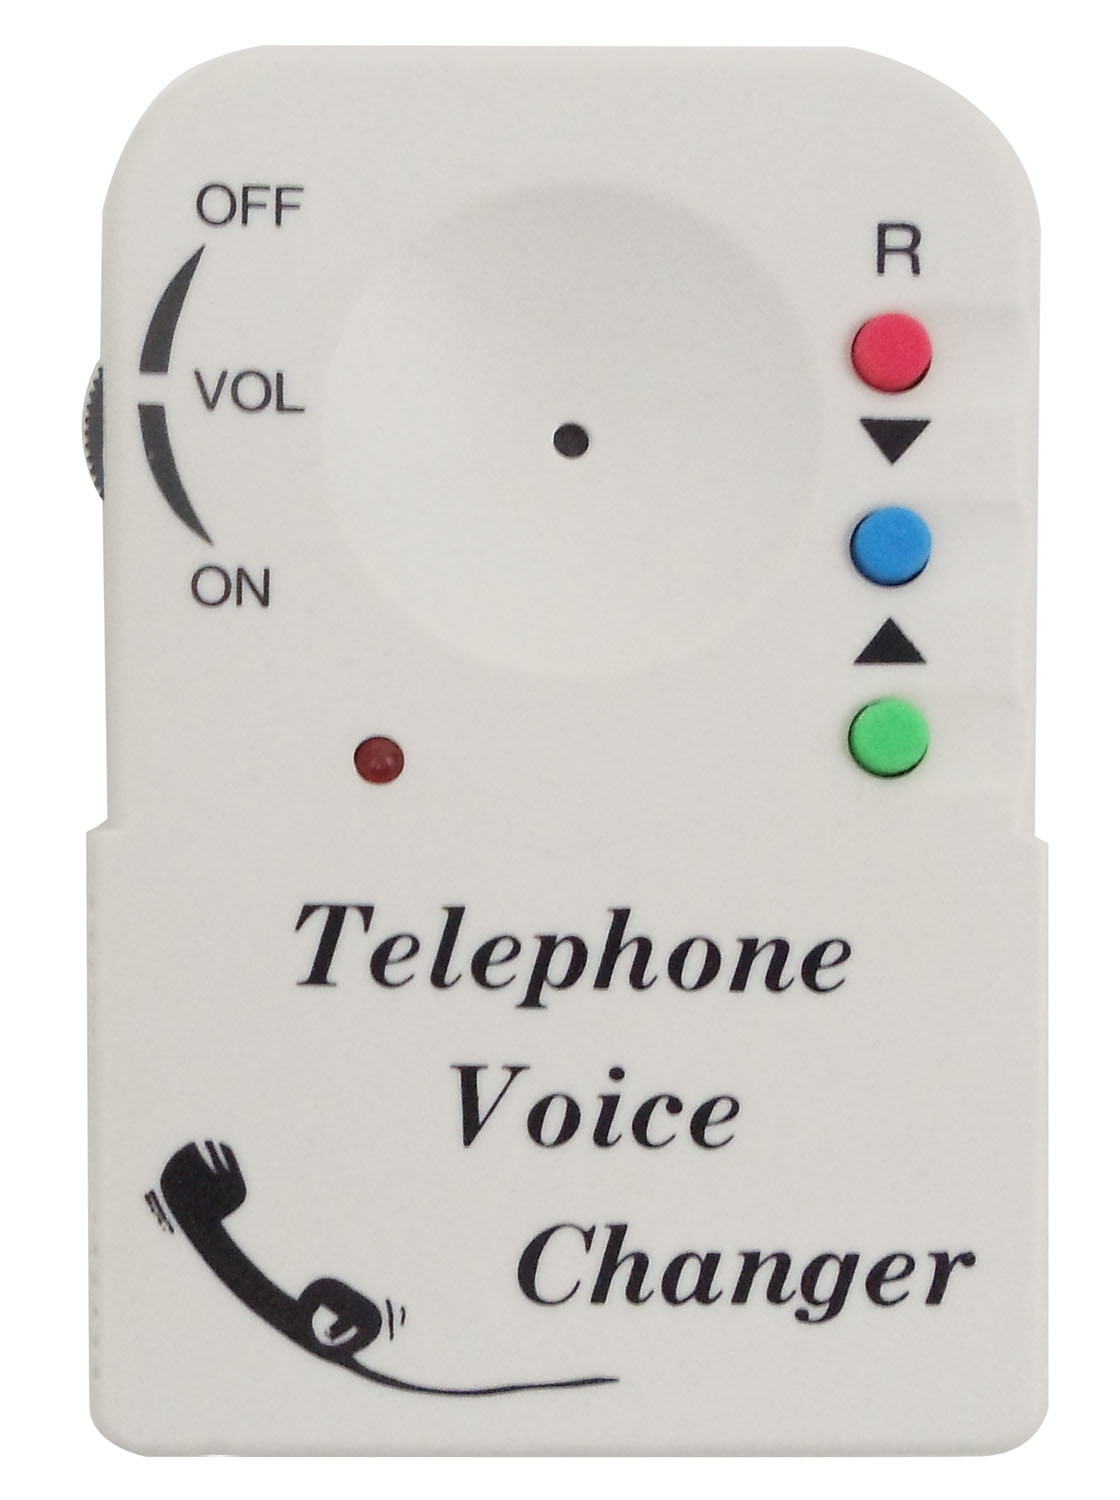 RF LIMITED - TELEPHONE VOICE DISGUISER - FUN PRODUCT CHANGES VOICE TO UNFAMILIAR SOUND. COMPATIBLE WITH ANY TELEPHONE.